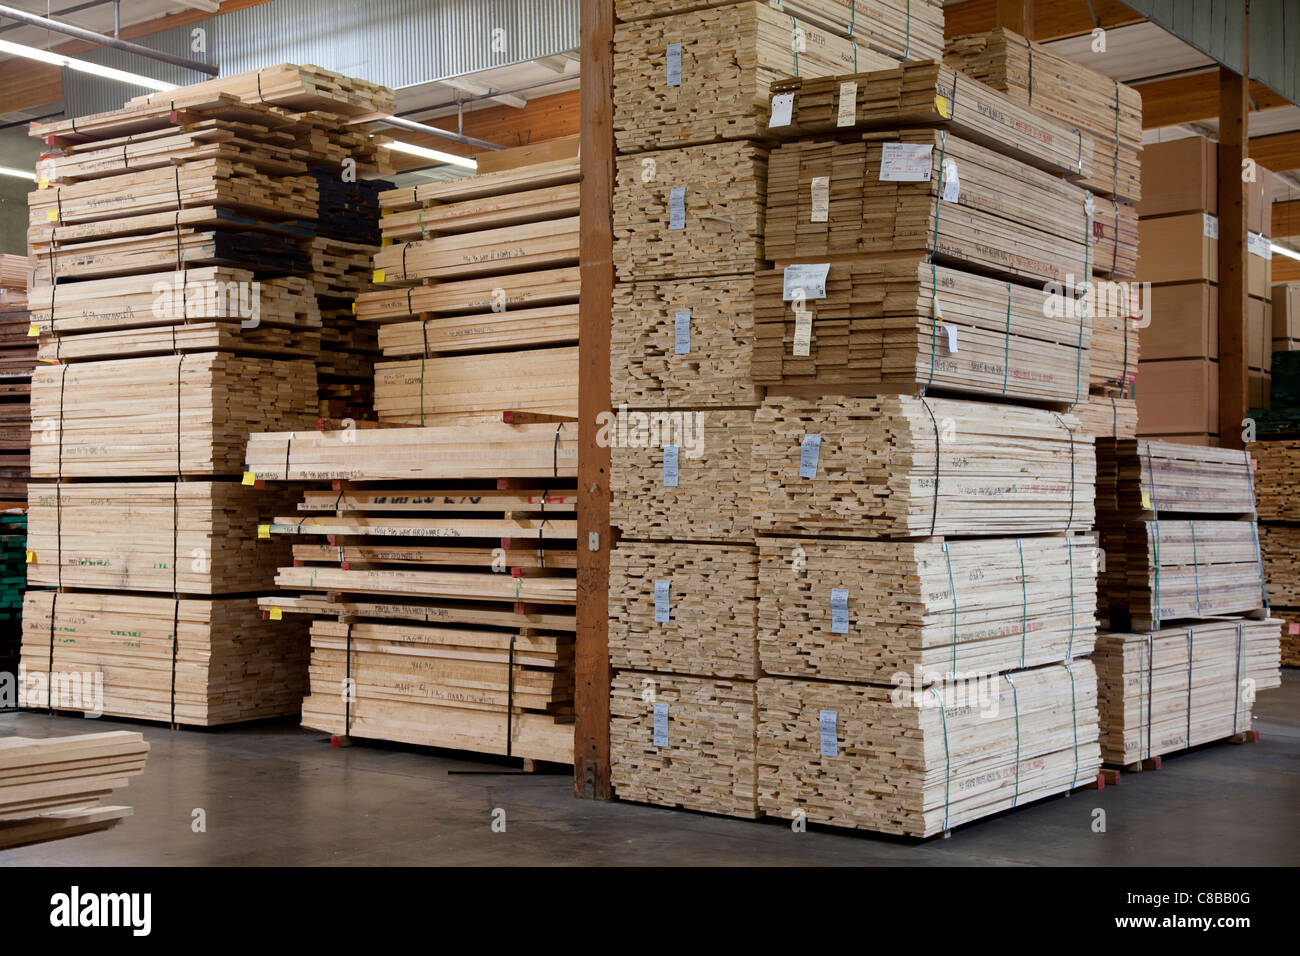 Stacks of plywood piled up in warehouse - Stock Image